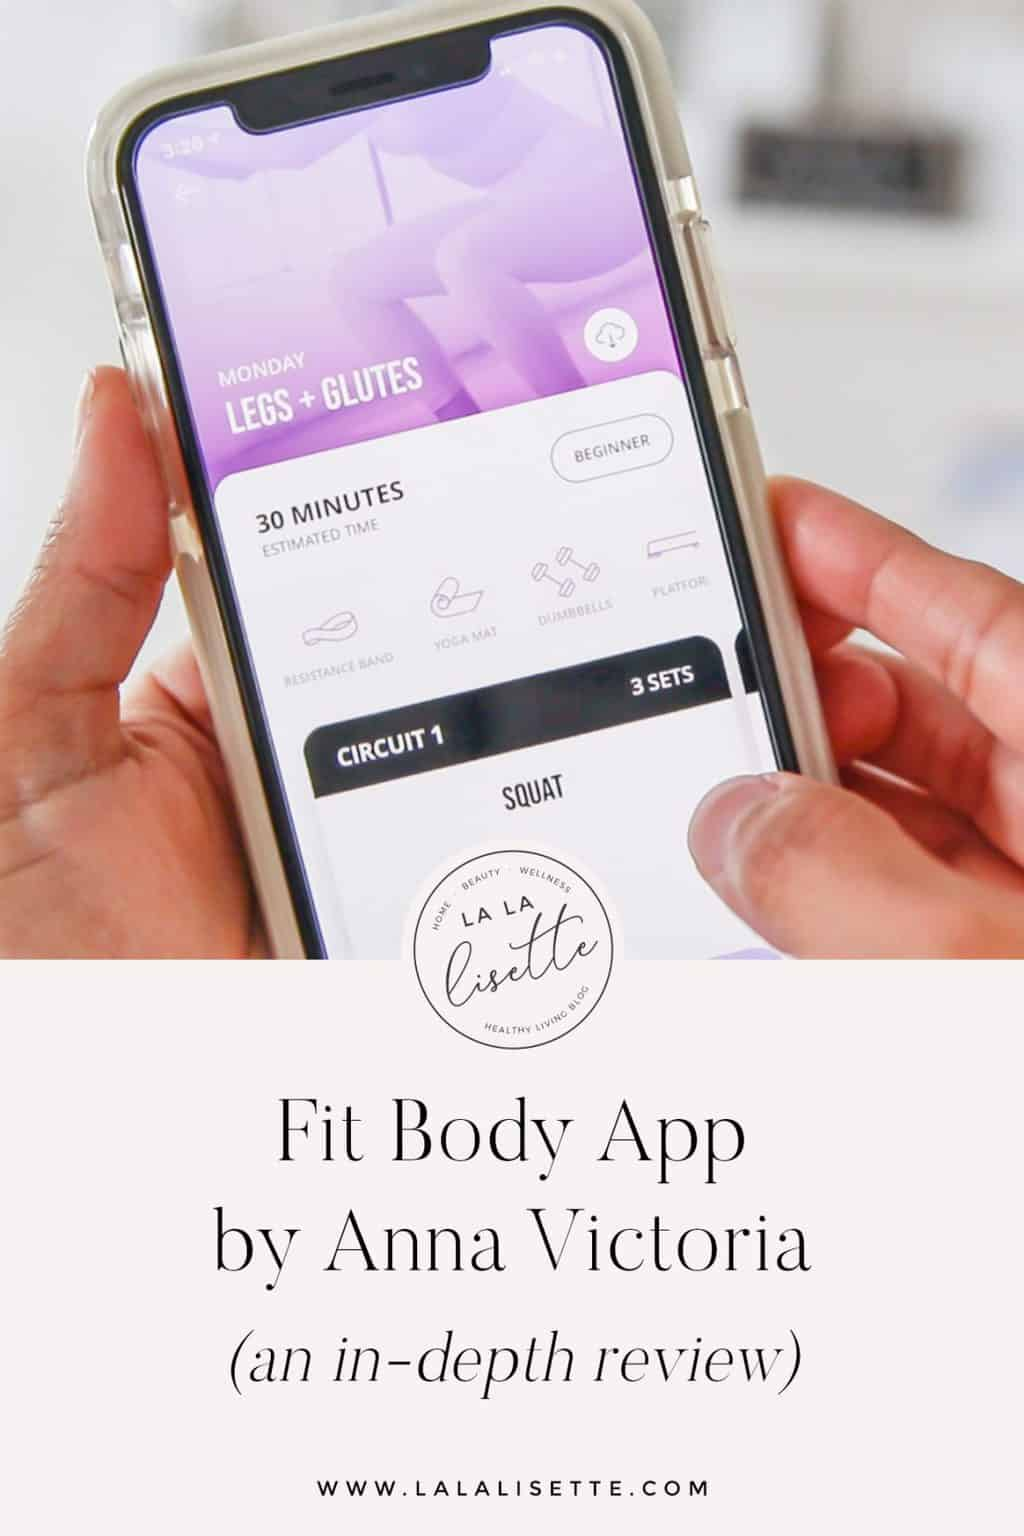 Fit Body App by Anna Victoria review